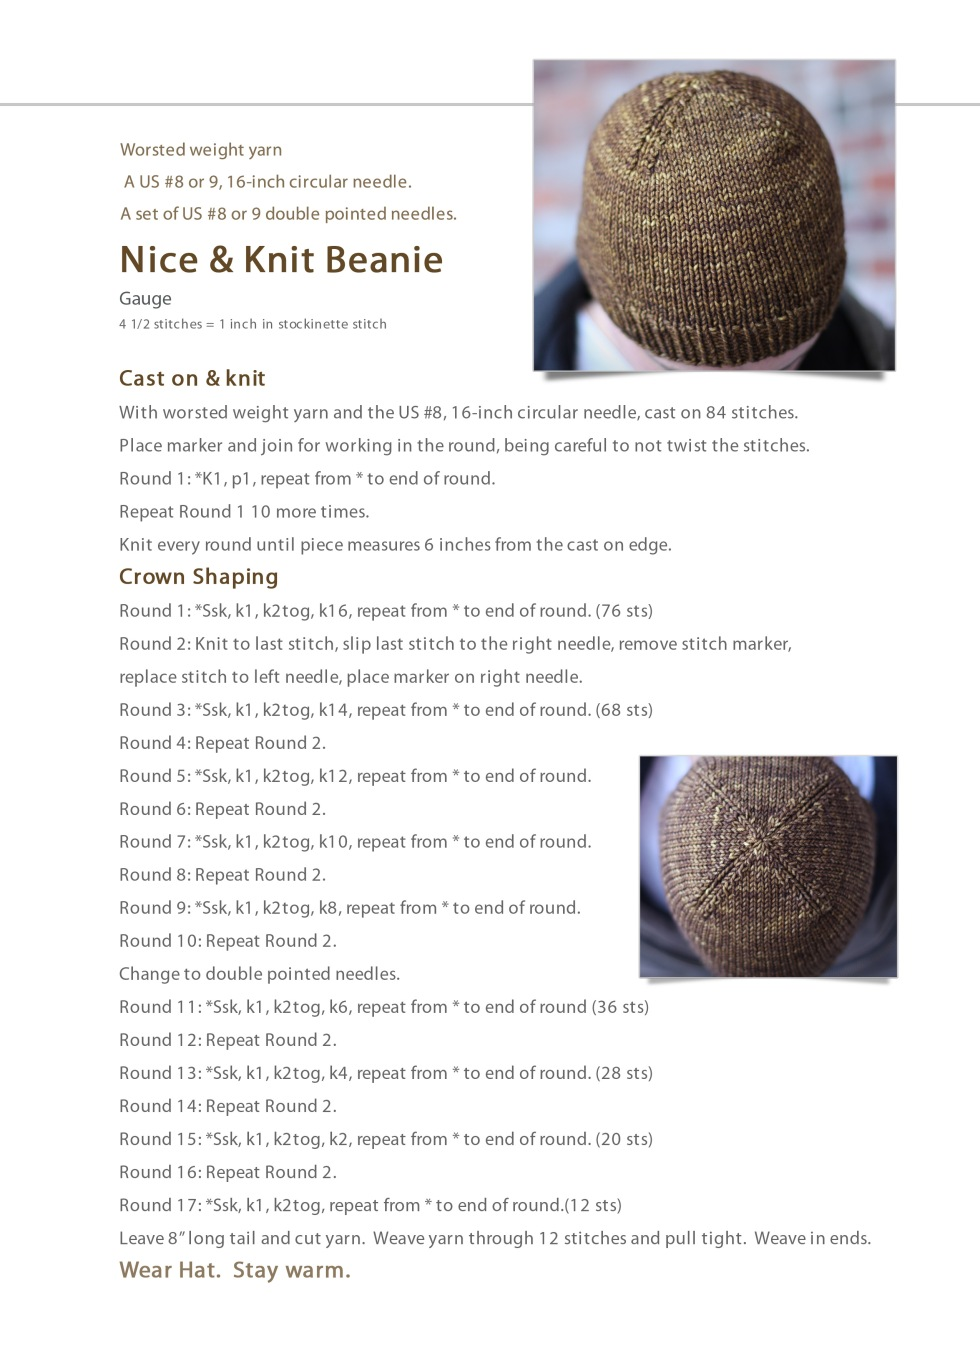 Knitting Patterns For Hats Using Circular Needles : Nice & Knit Beanie: Free Hat Pattern Nice and Knit